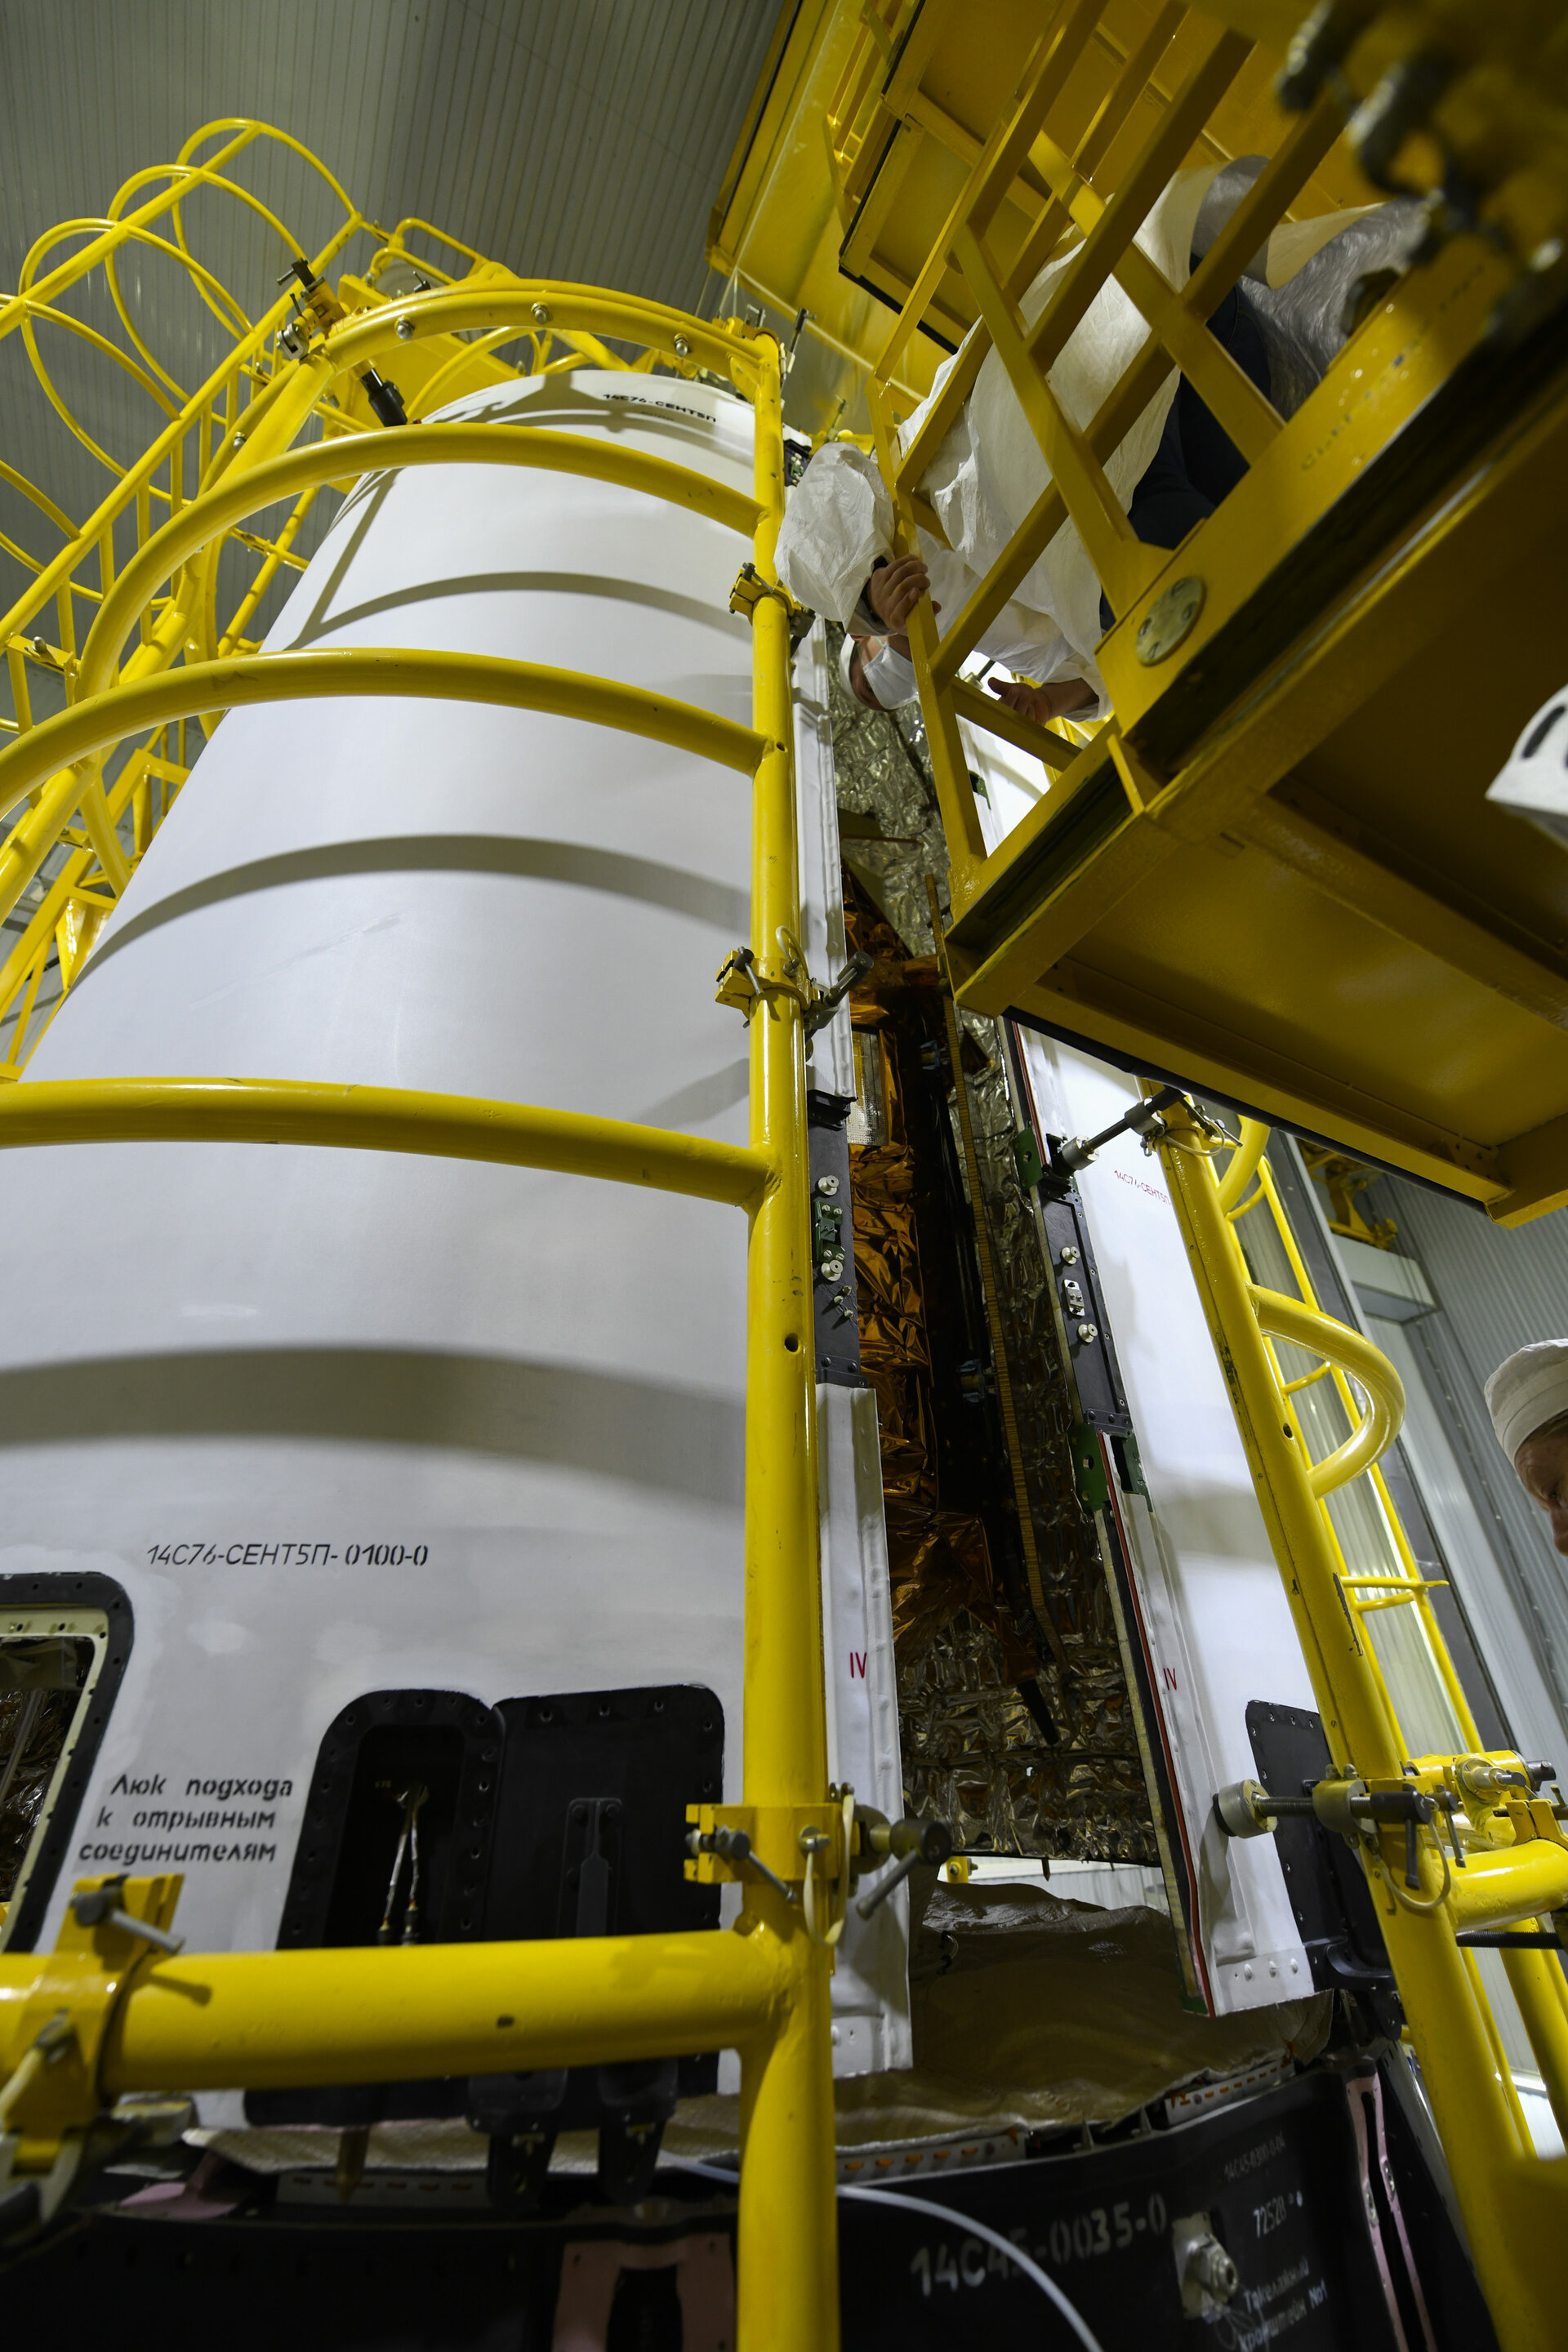 Encapsulation of Sentinel-5P within the launcher fairing